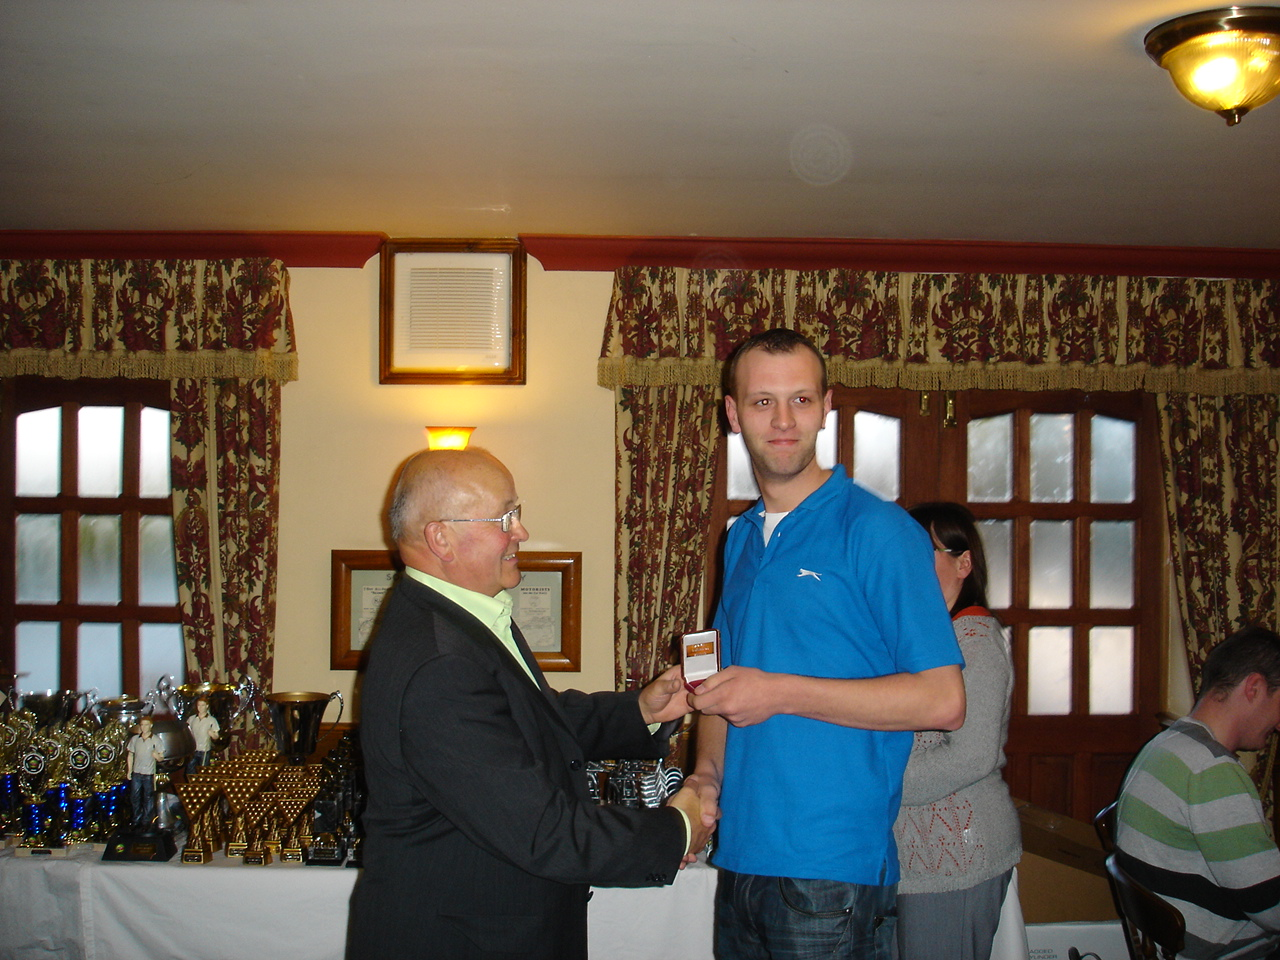 8 Ball Winner - Andy Grindley